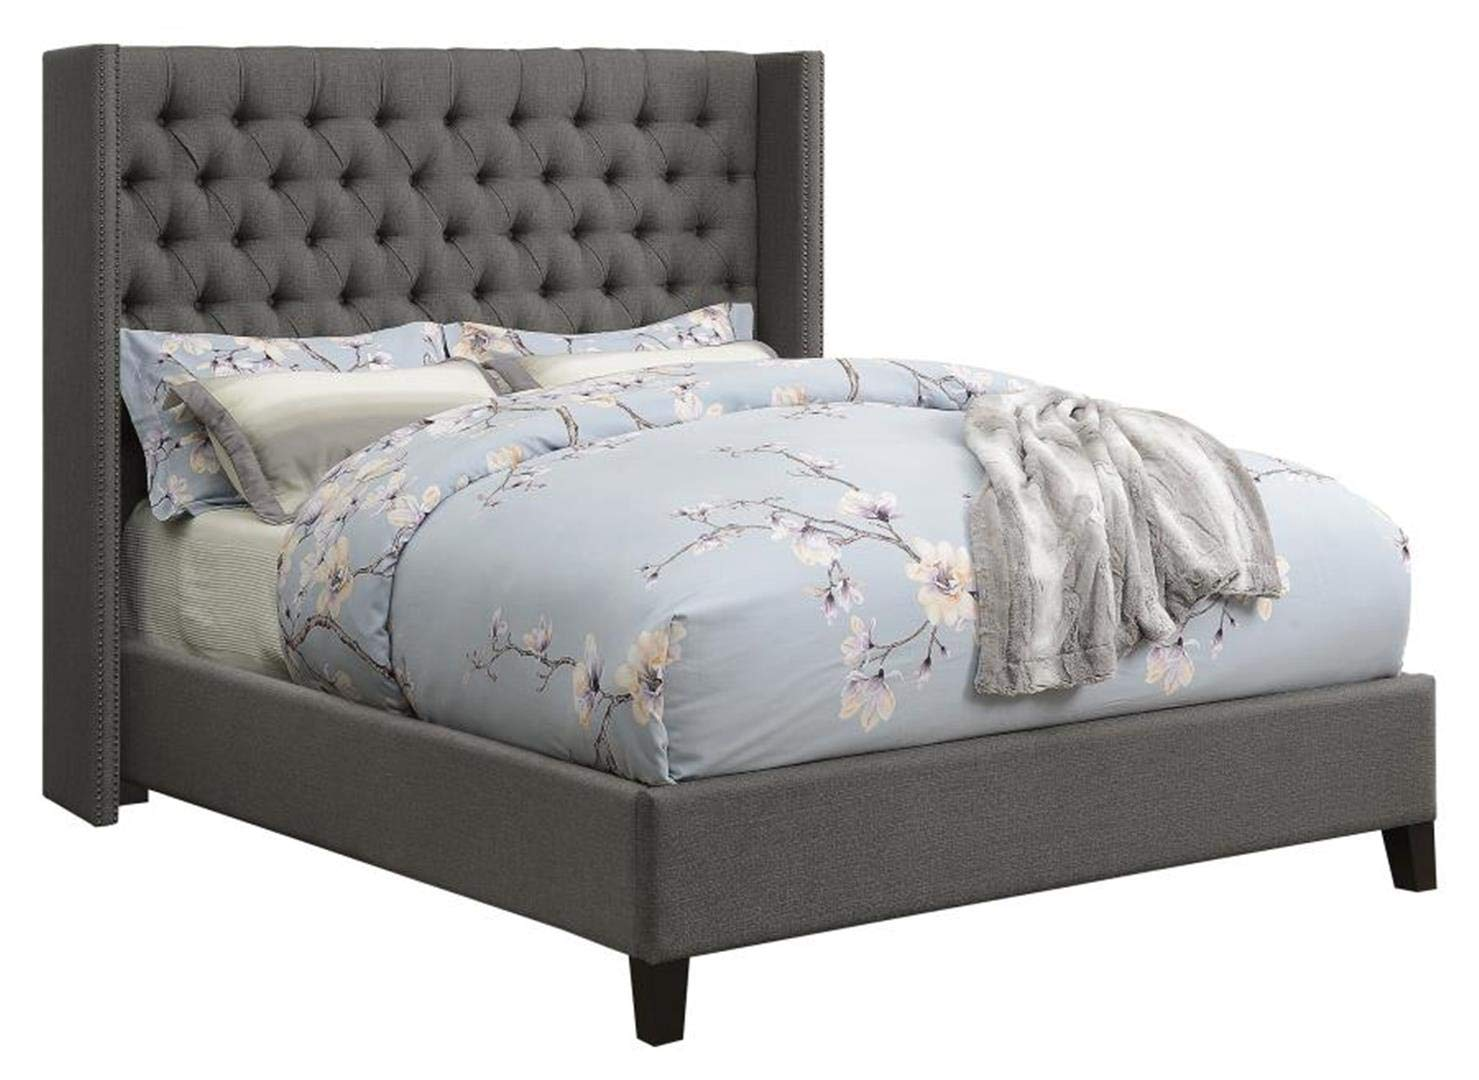 Amazon.com: Benicia Upholstered California King Bed With Demi Wings And  Button Tufting Grey: Kitchen U0026 Dining